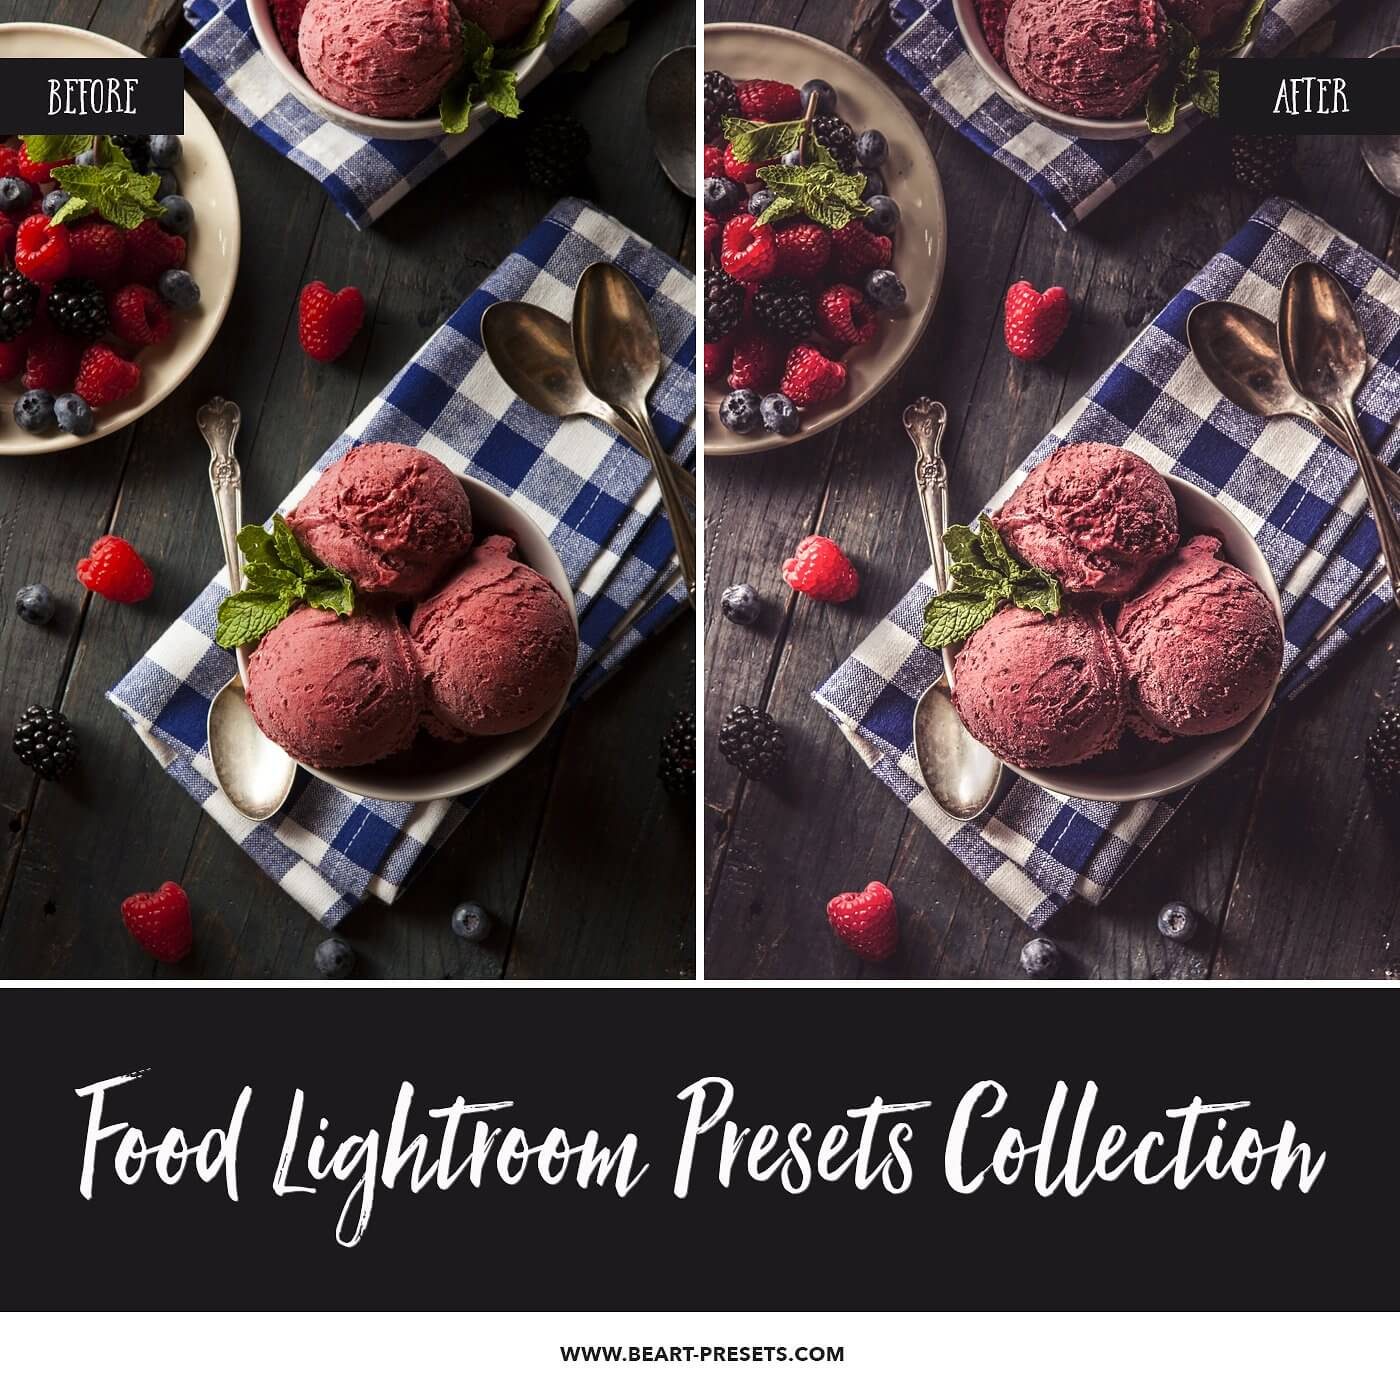 40+ Best Photoshop Actions of 2018 - Web Design Tips